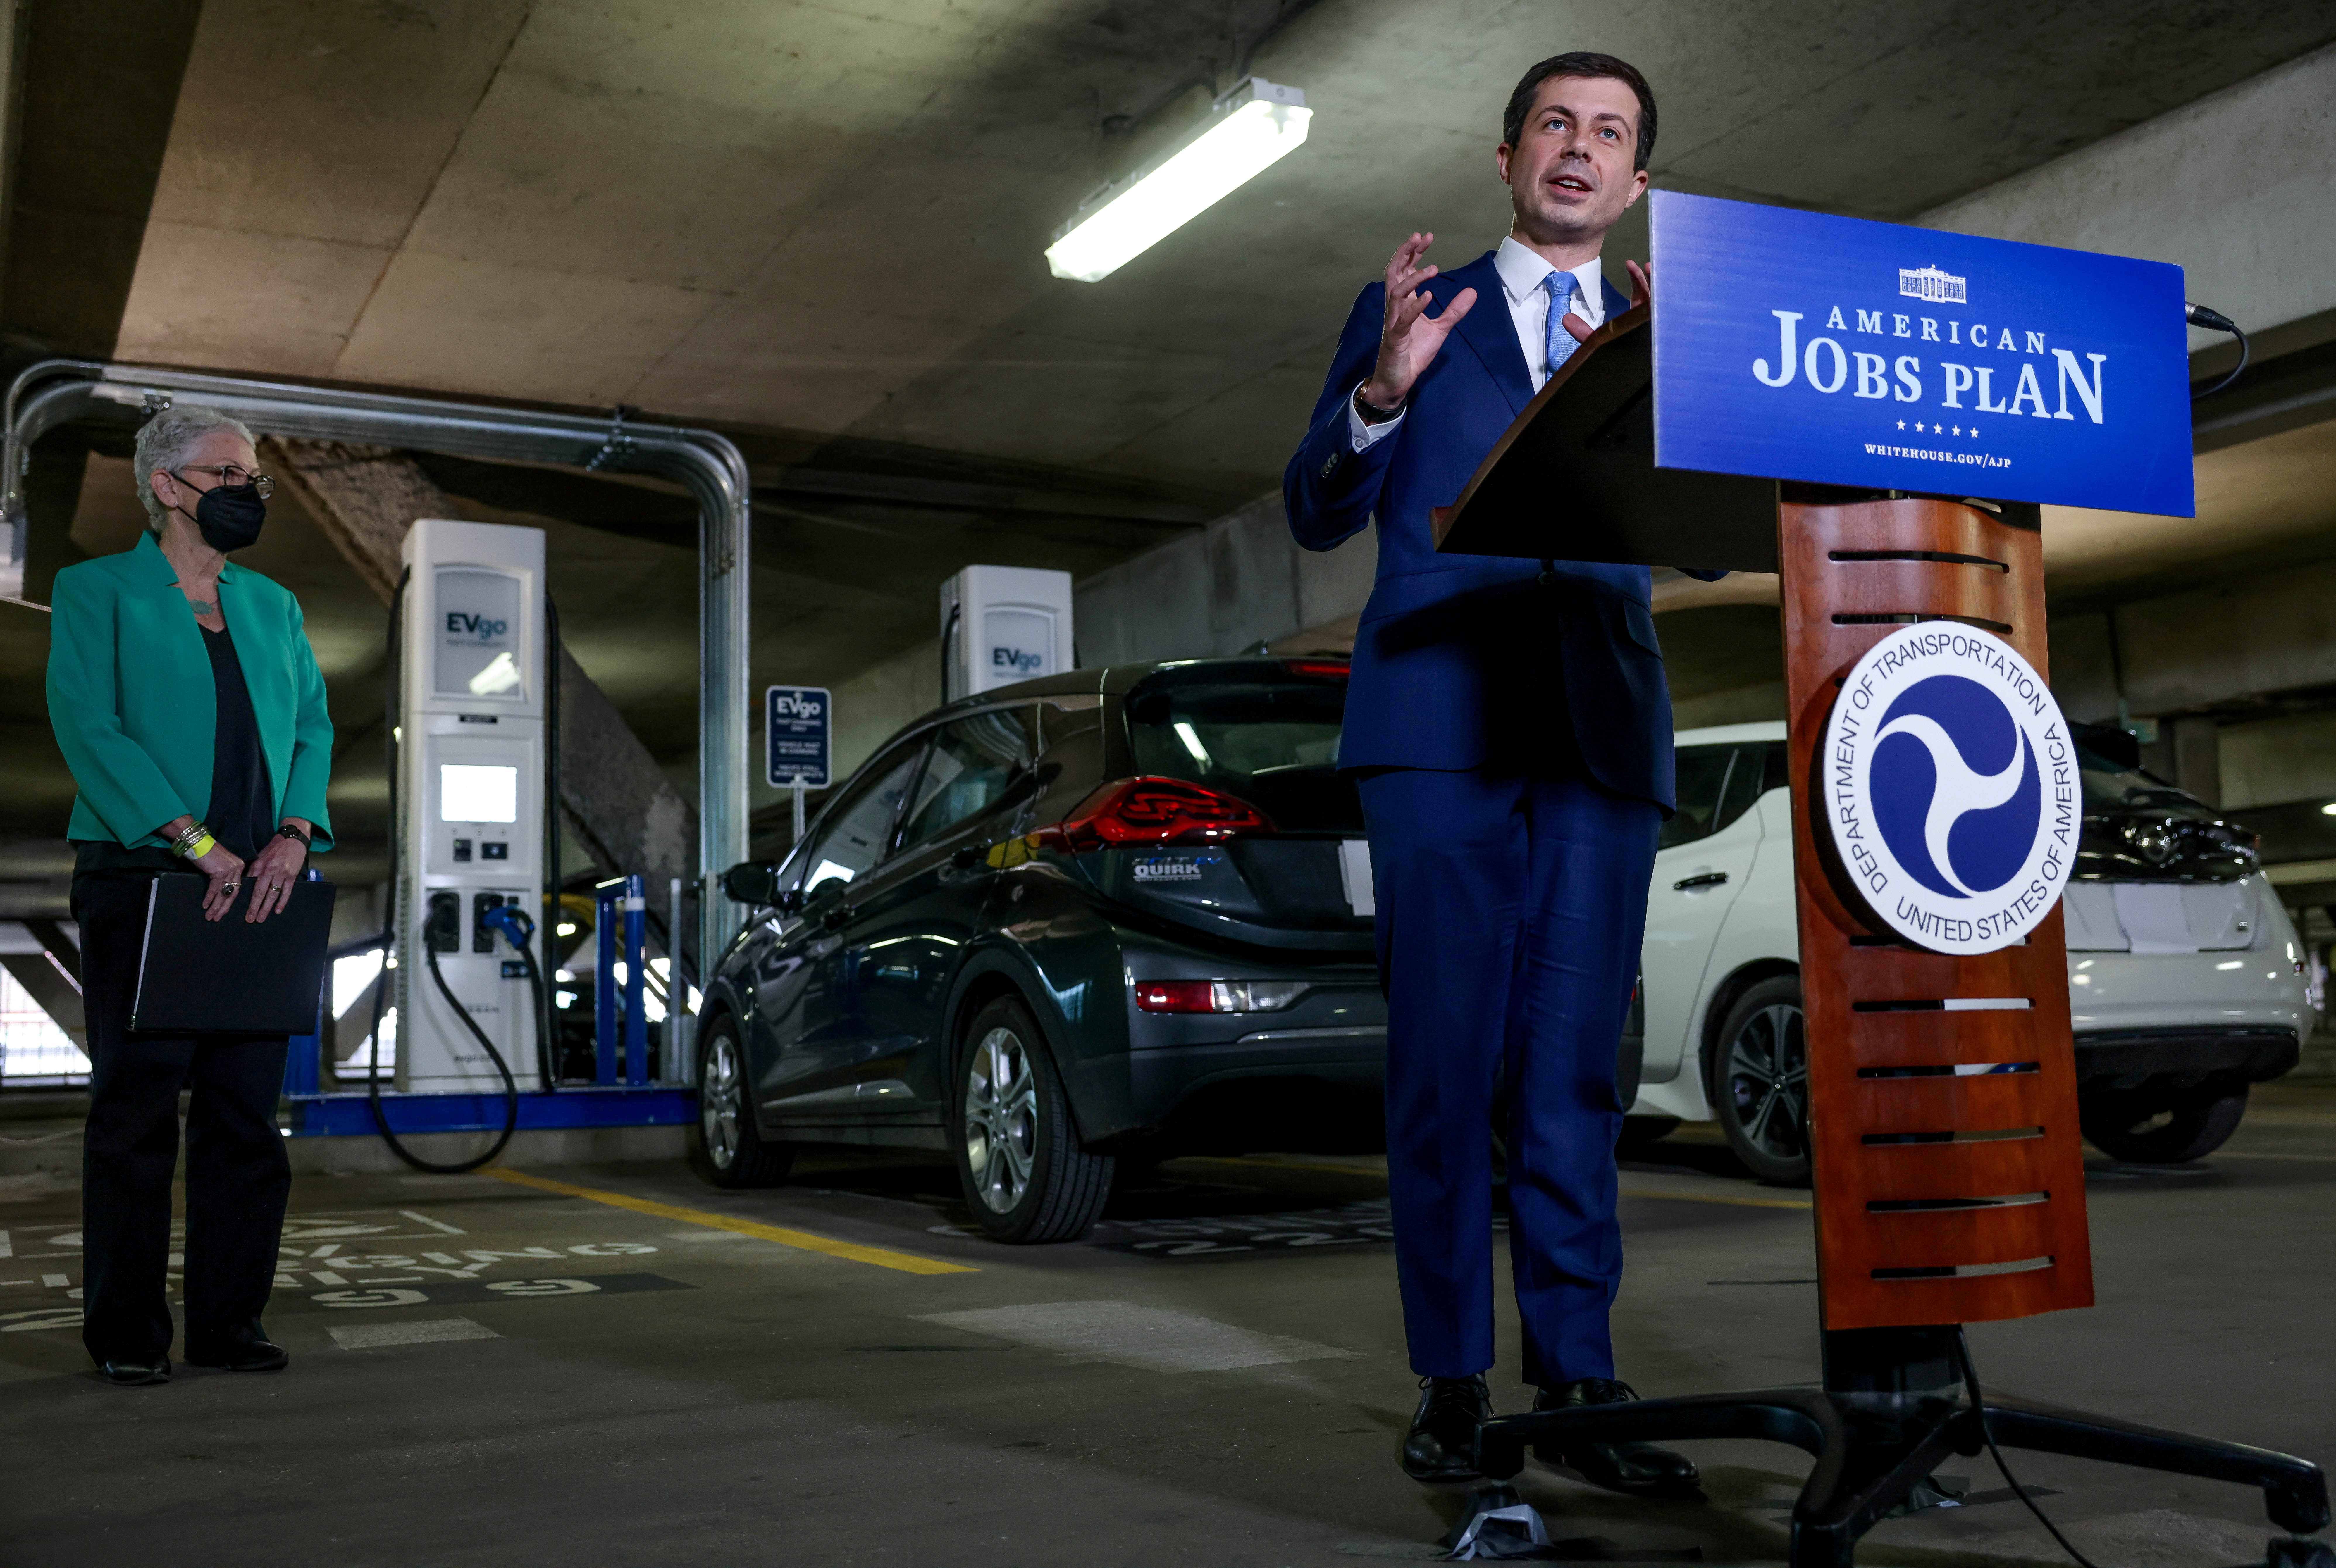 U.S. Transportation Secretary Pete Buttigieg and White House Climate Advisor Gina McCarthy, hold a news conference in the parking garage at Union Station in front of new EV charging stations in Washington, U.S., April 22, 2021. REUTERS/Evelyn Hockstein